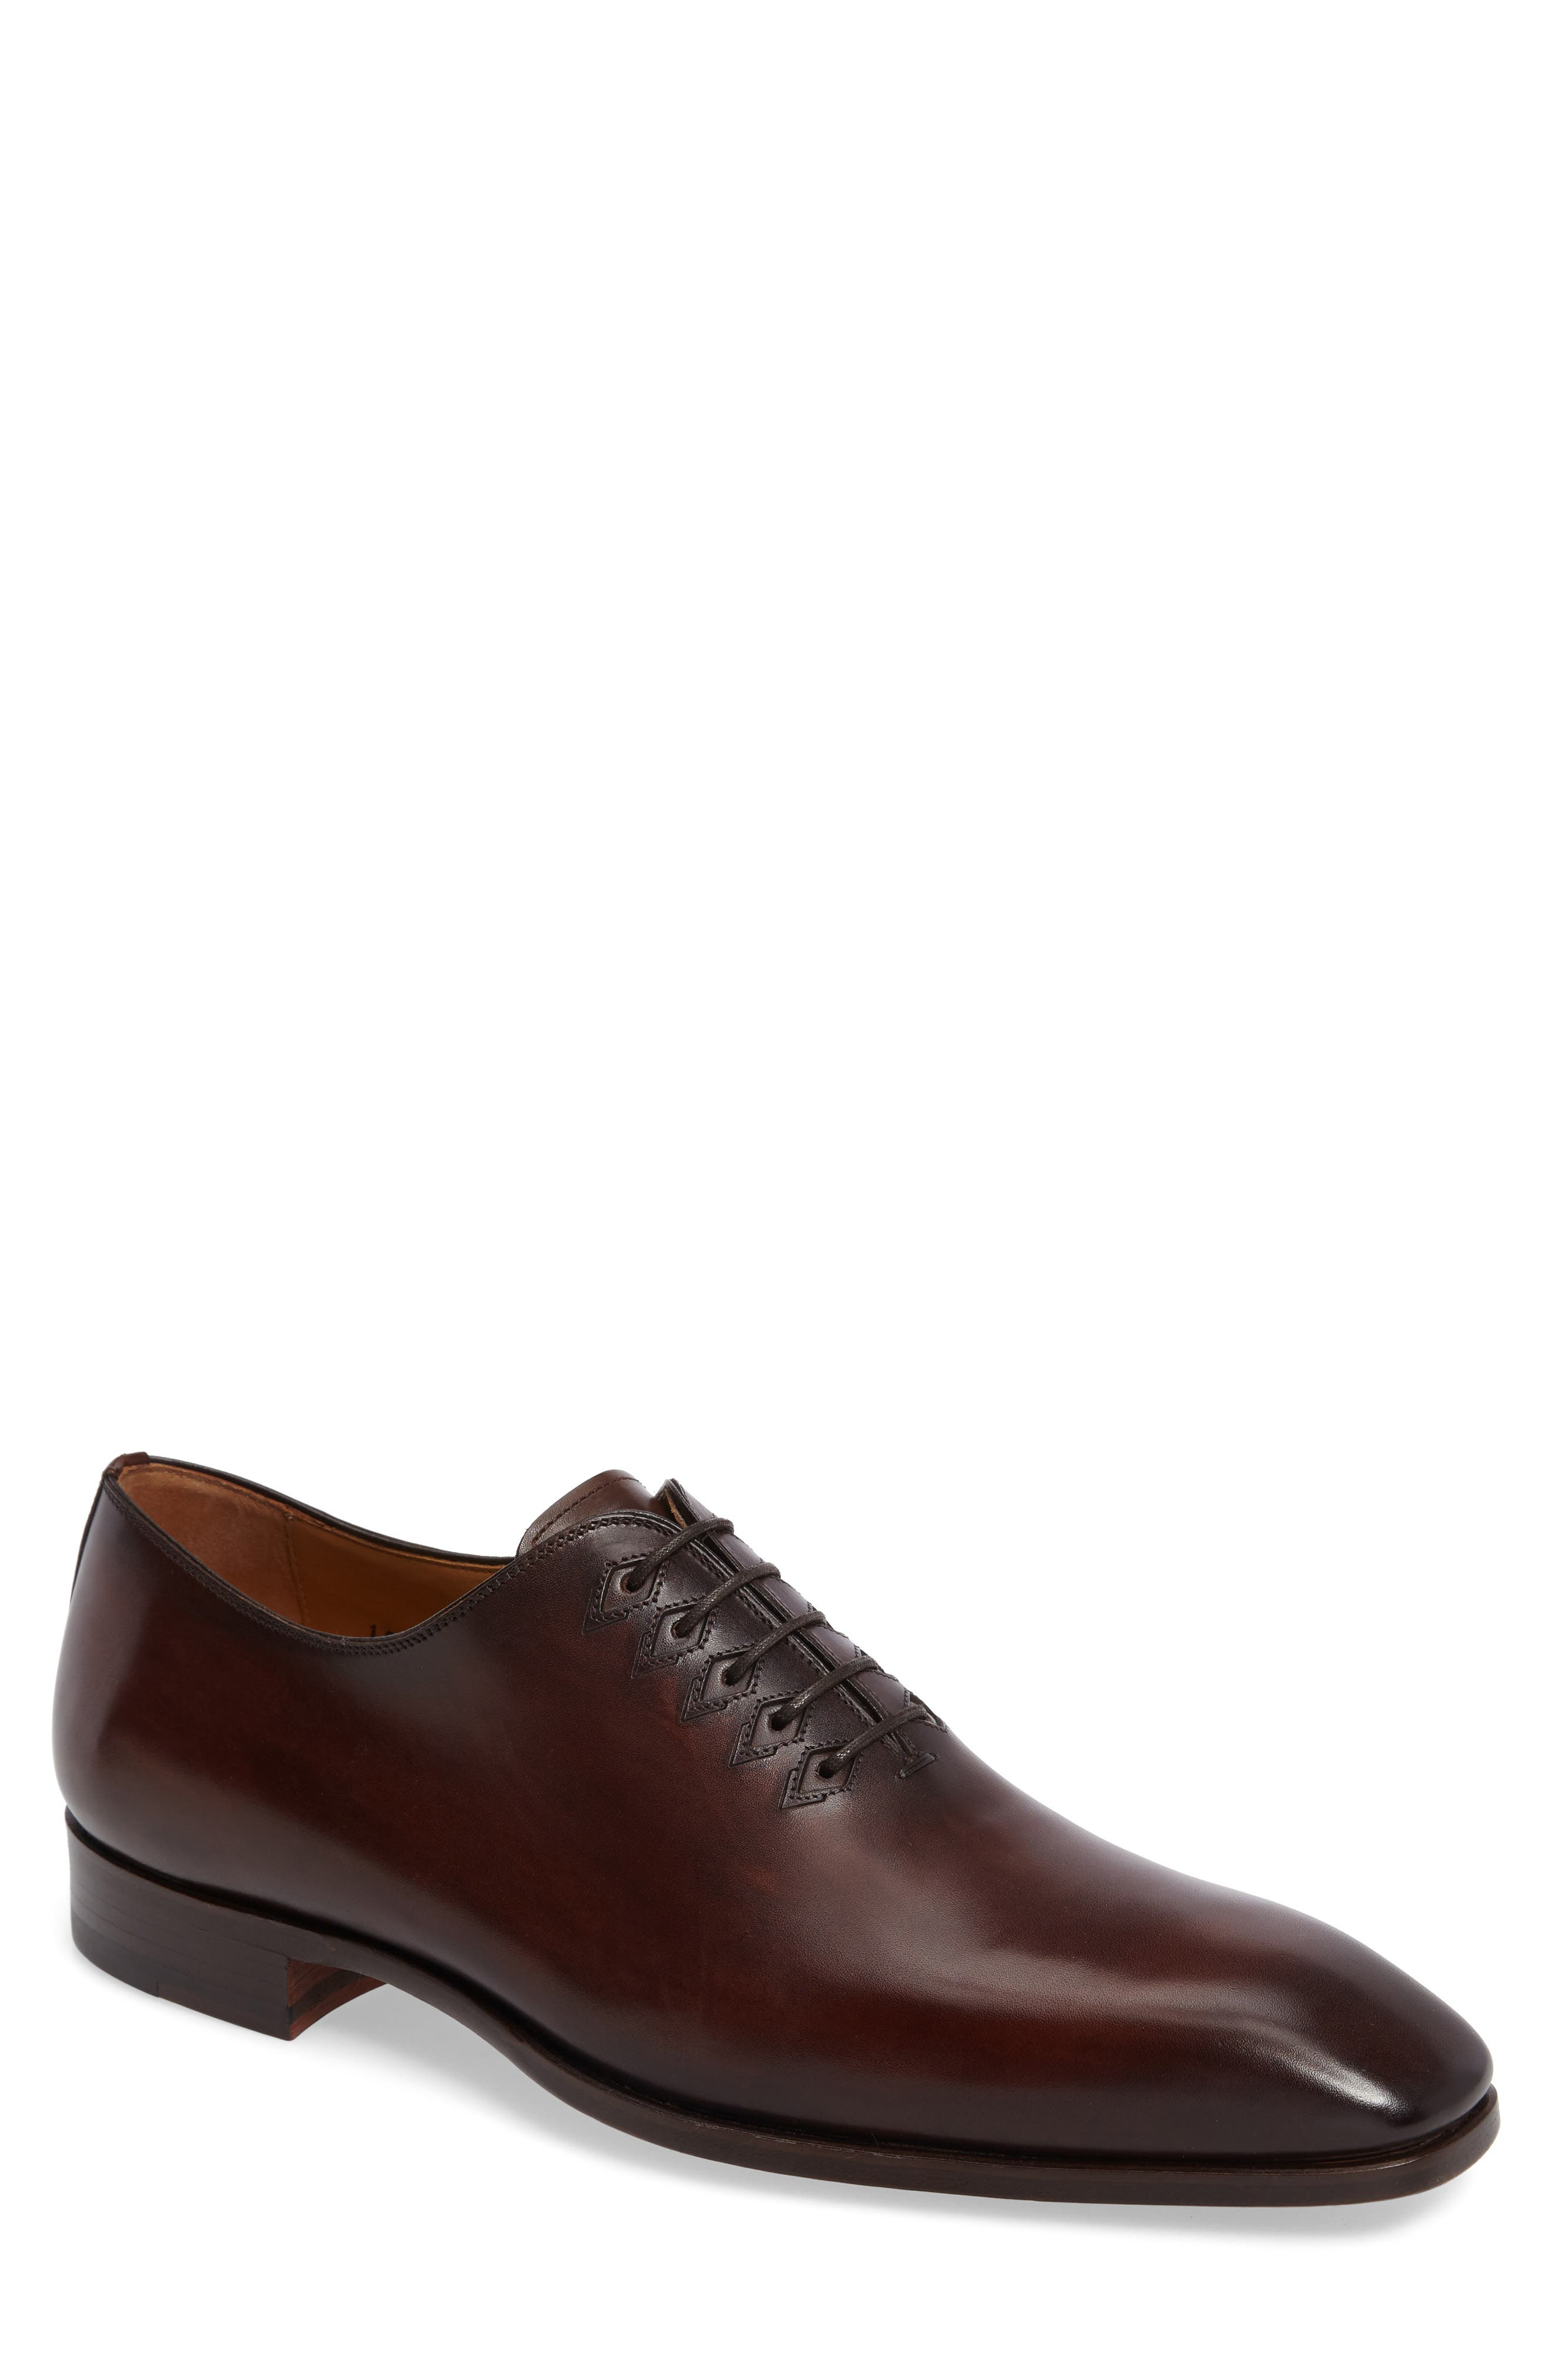 Main Image - Magnanni Rioja Wholecut Oxford (Men)